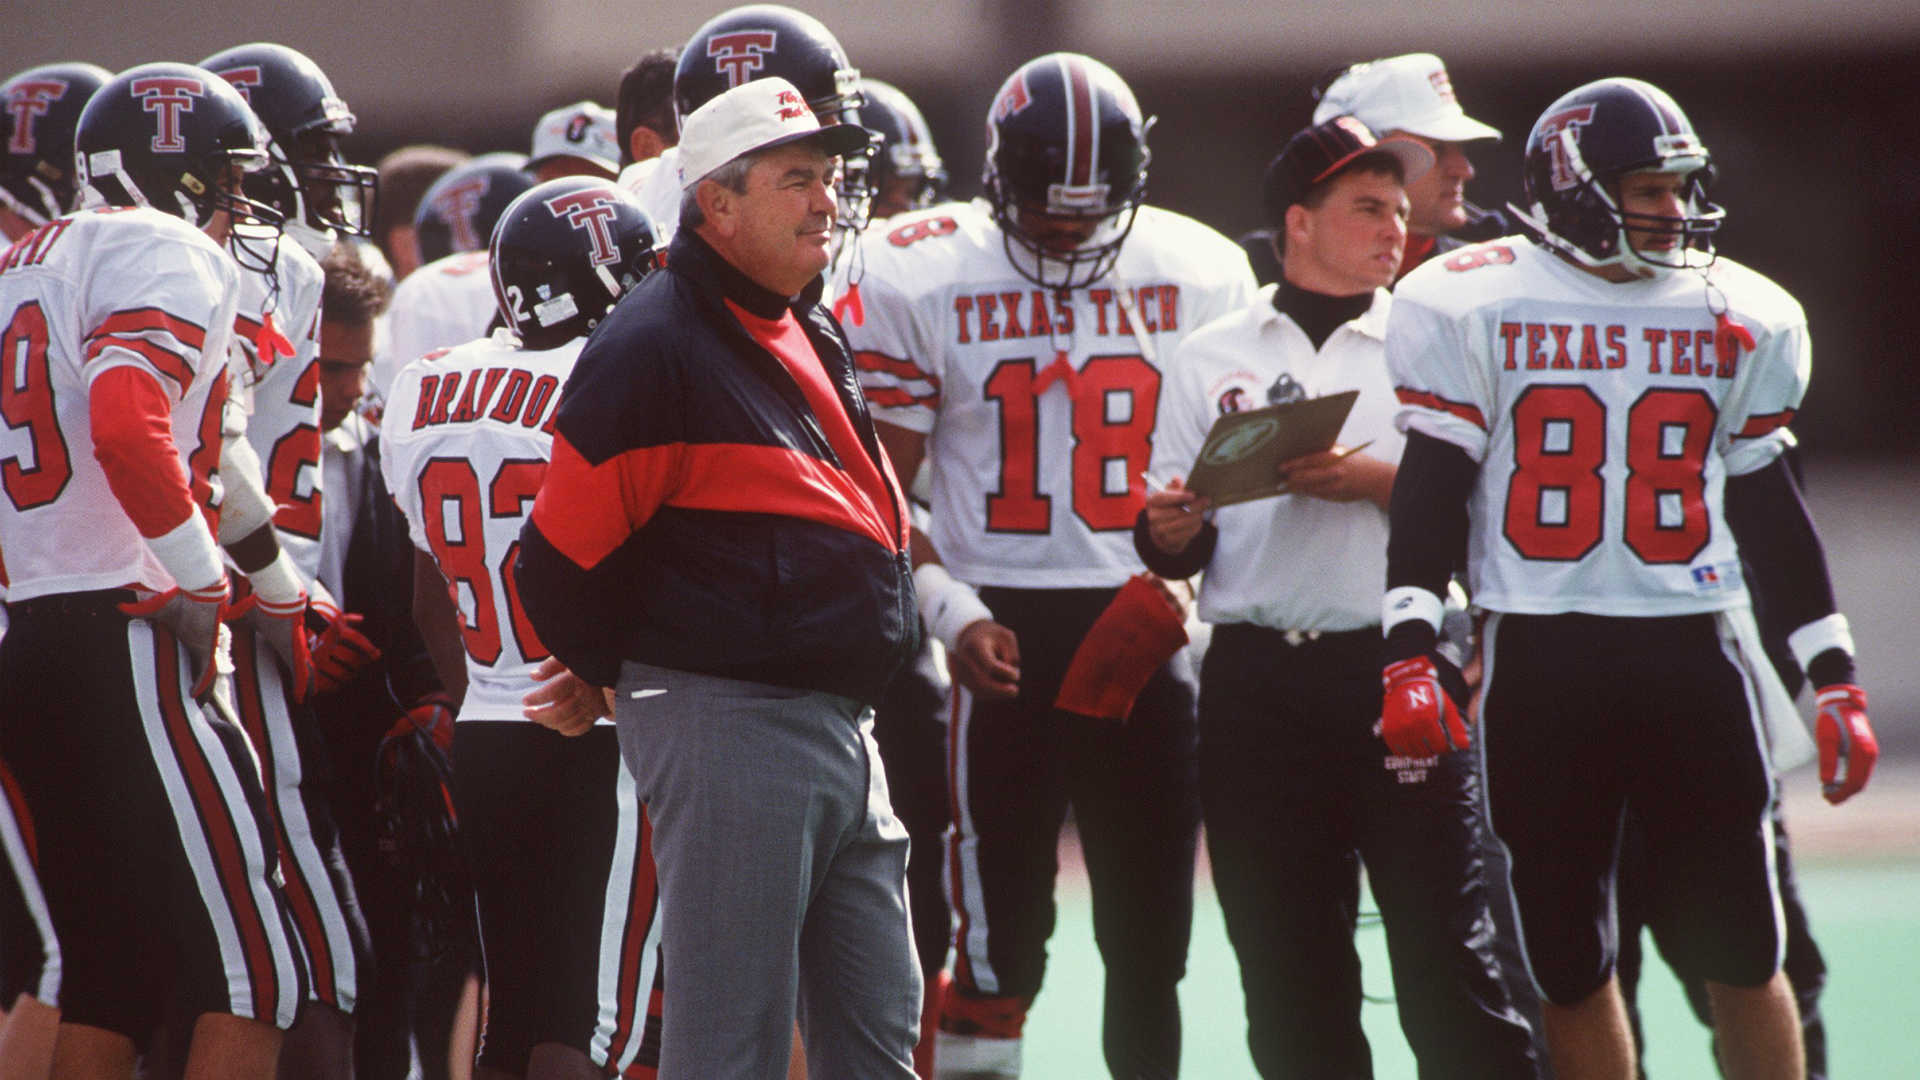 Spike Dykes, revered former coach at Texas Tech, dead at 79